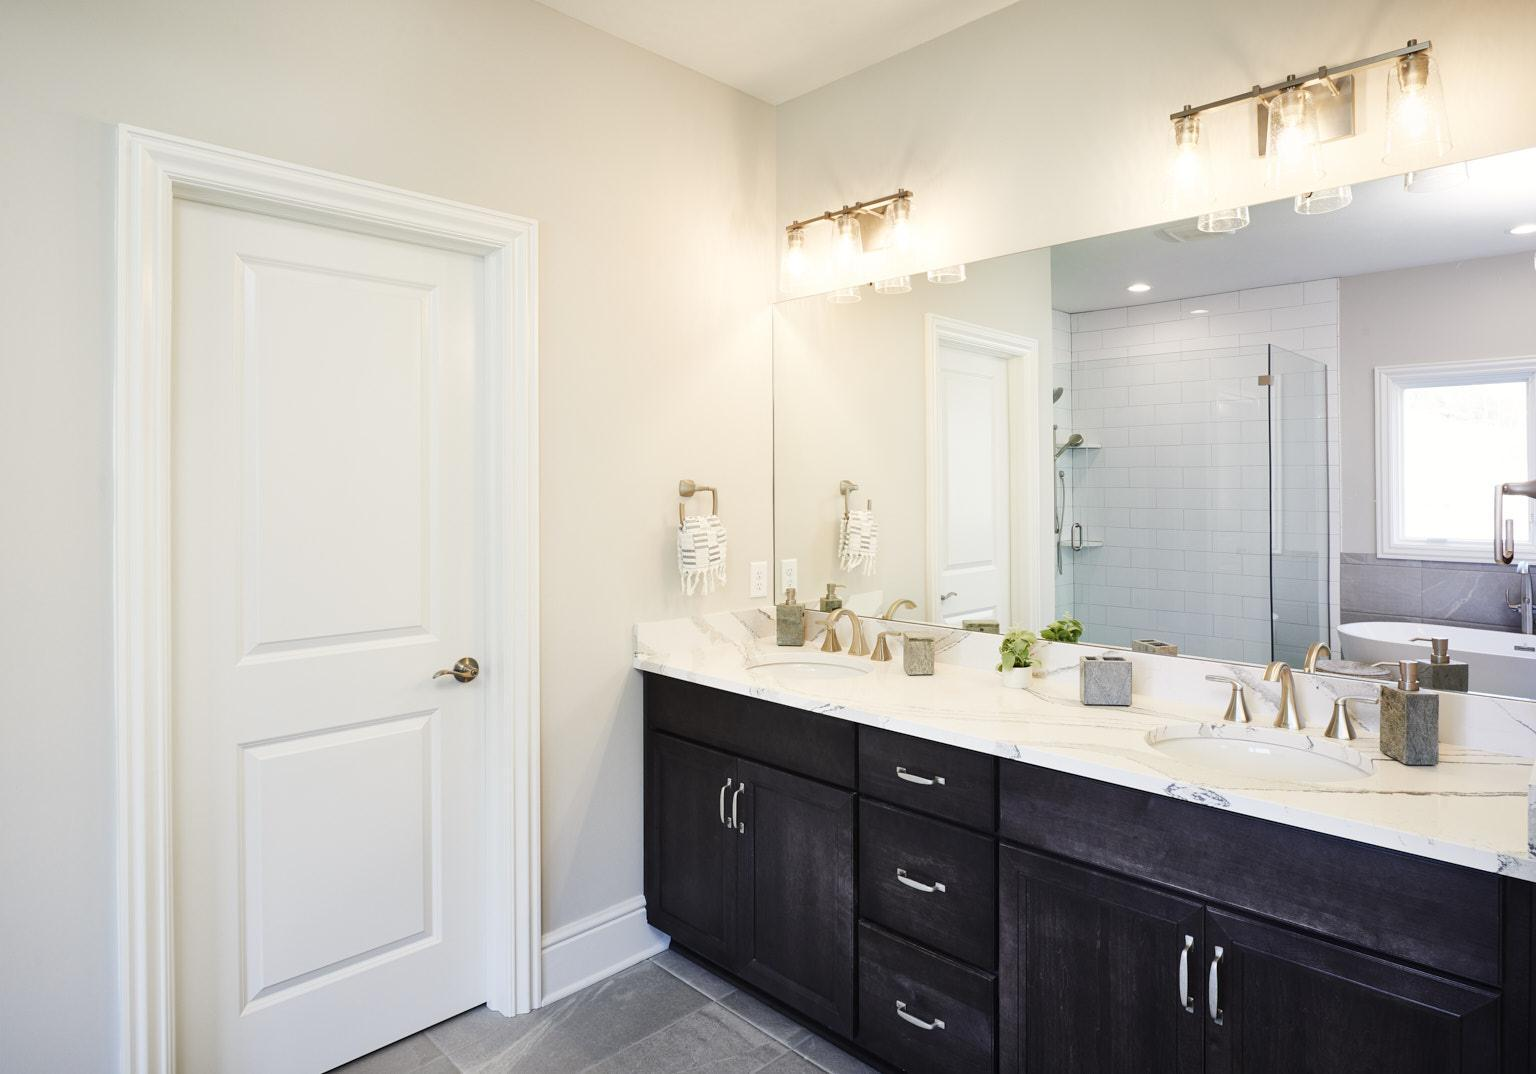 Bathroom featured in the Victoria By Eddy Homes in Pittsburgh, PA